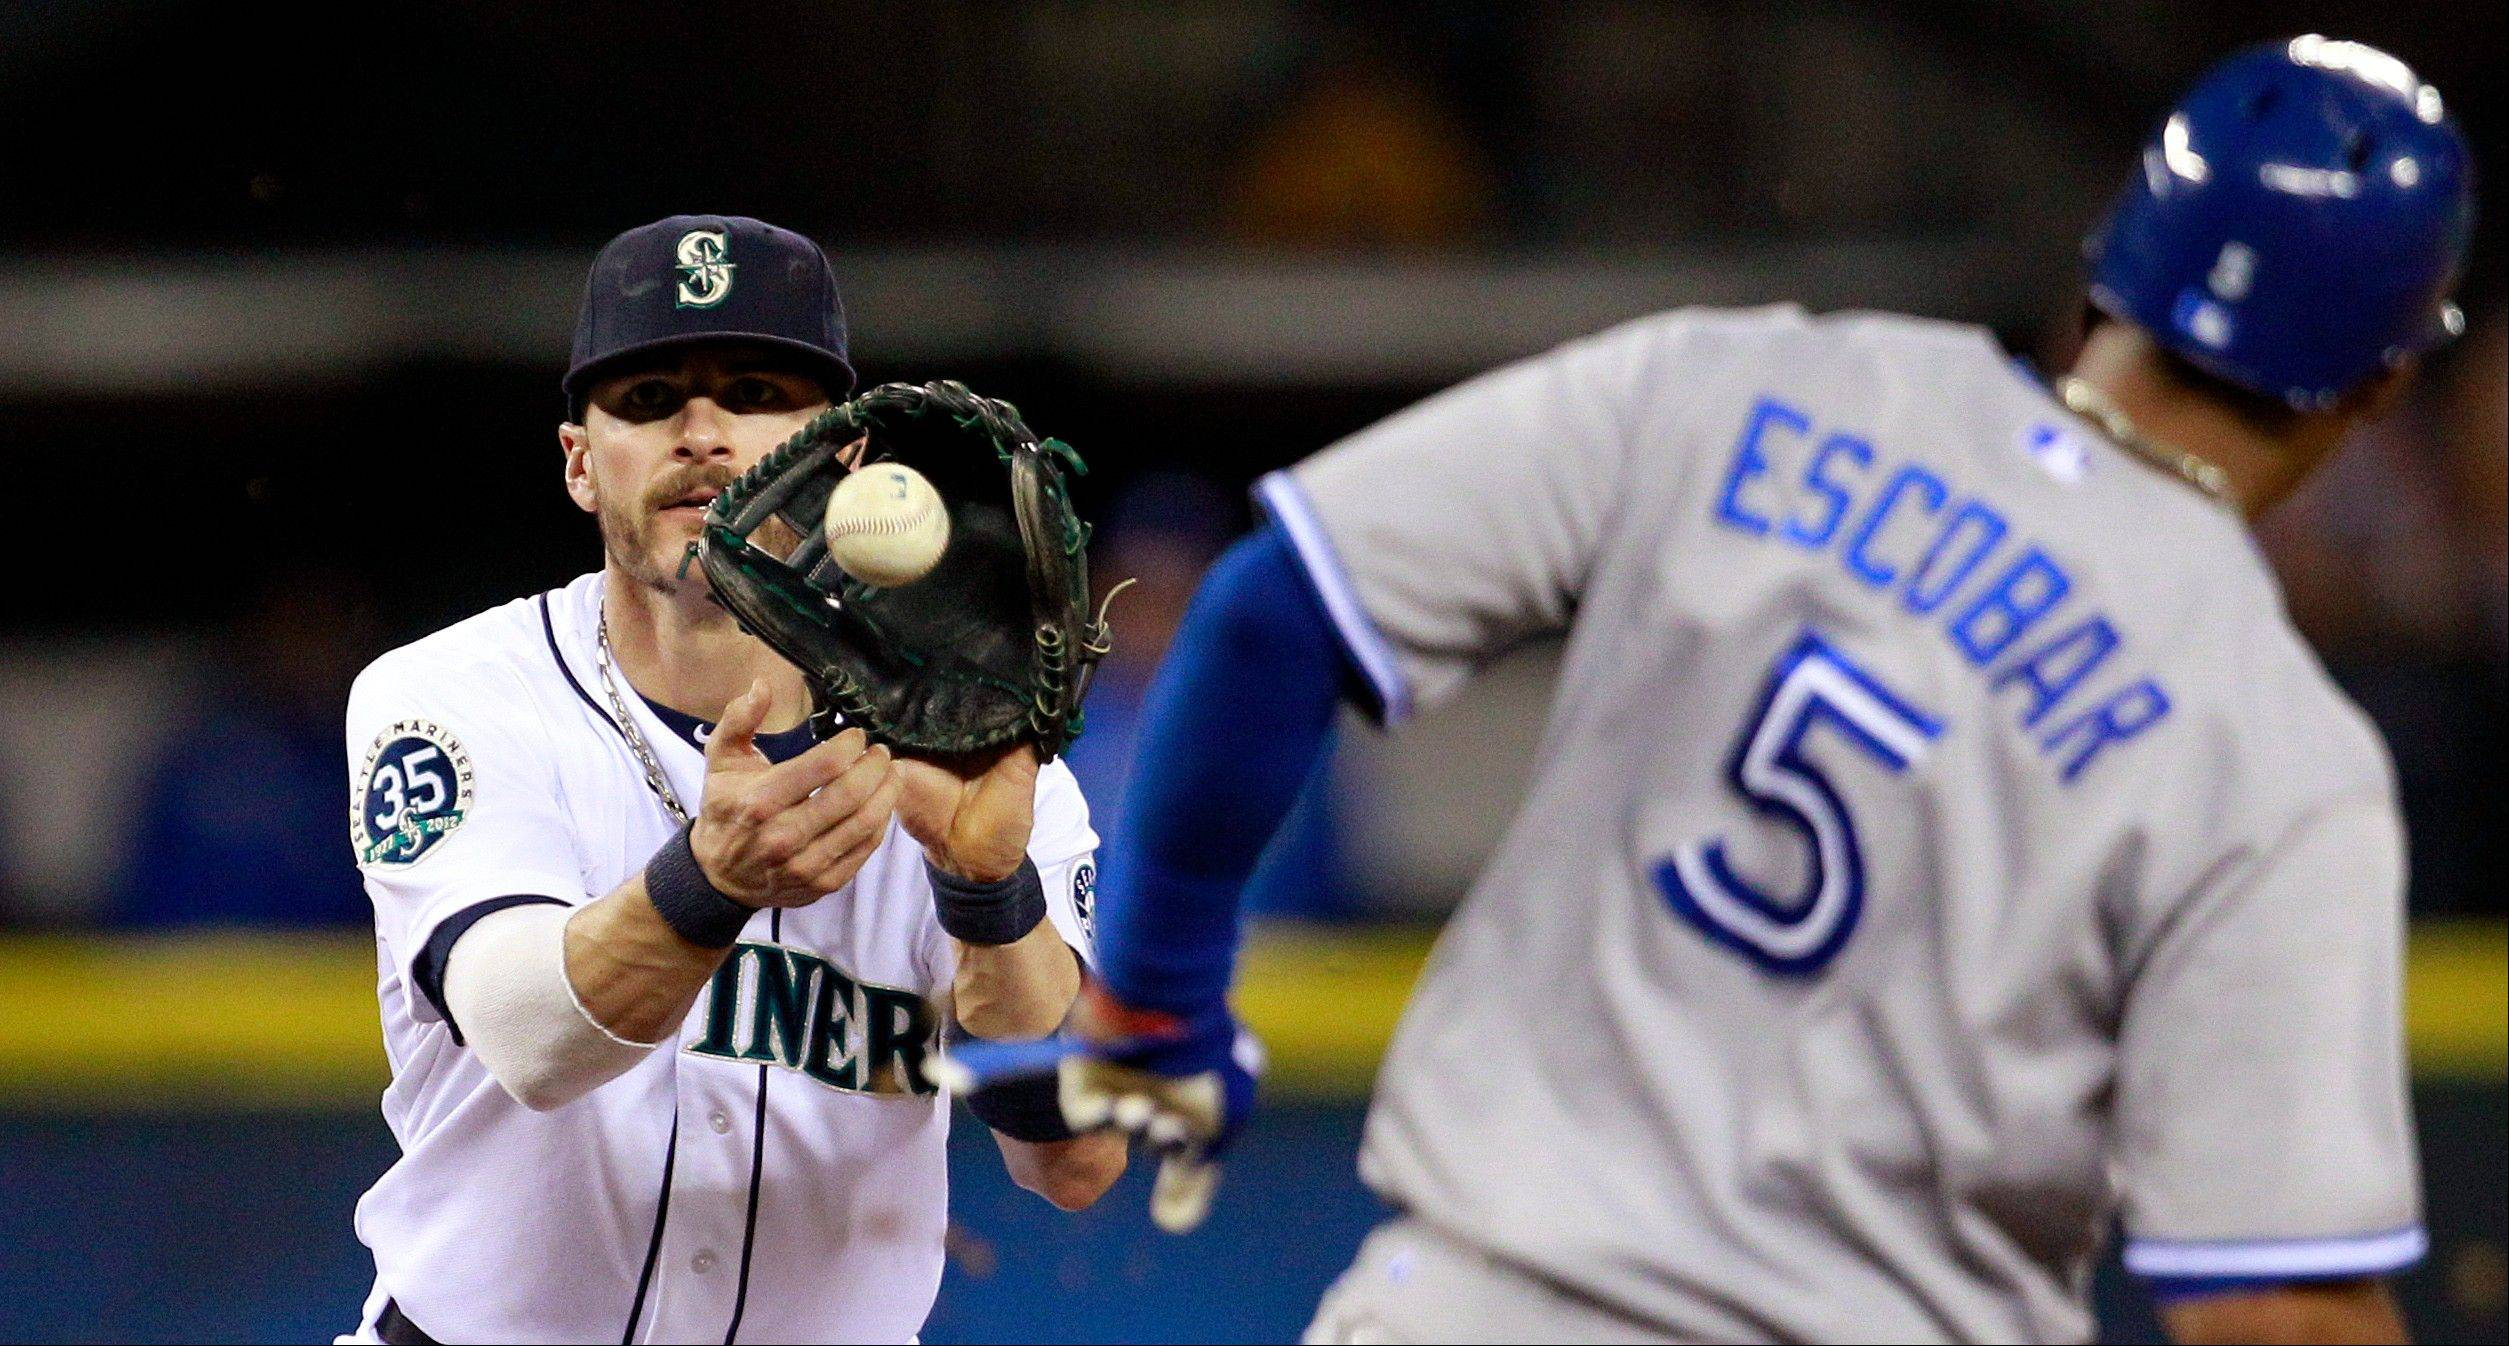 Mariners shortstop Brendan Ryan forces out Toronto�s Yunel Escobar at second base in the fifth inning Tuesday in Seattle.